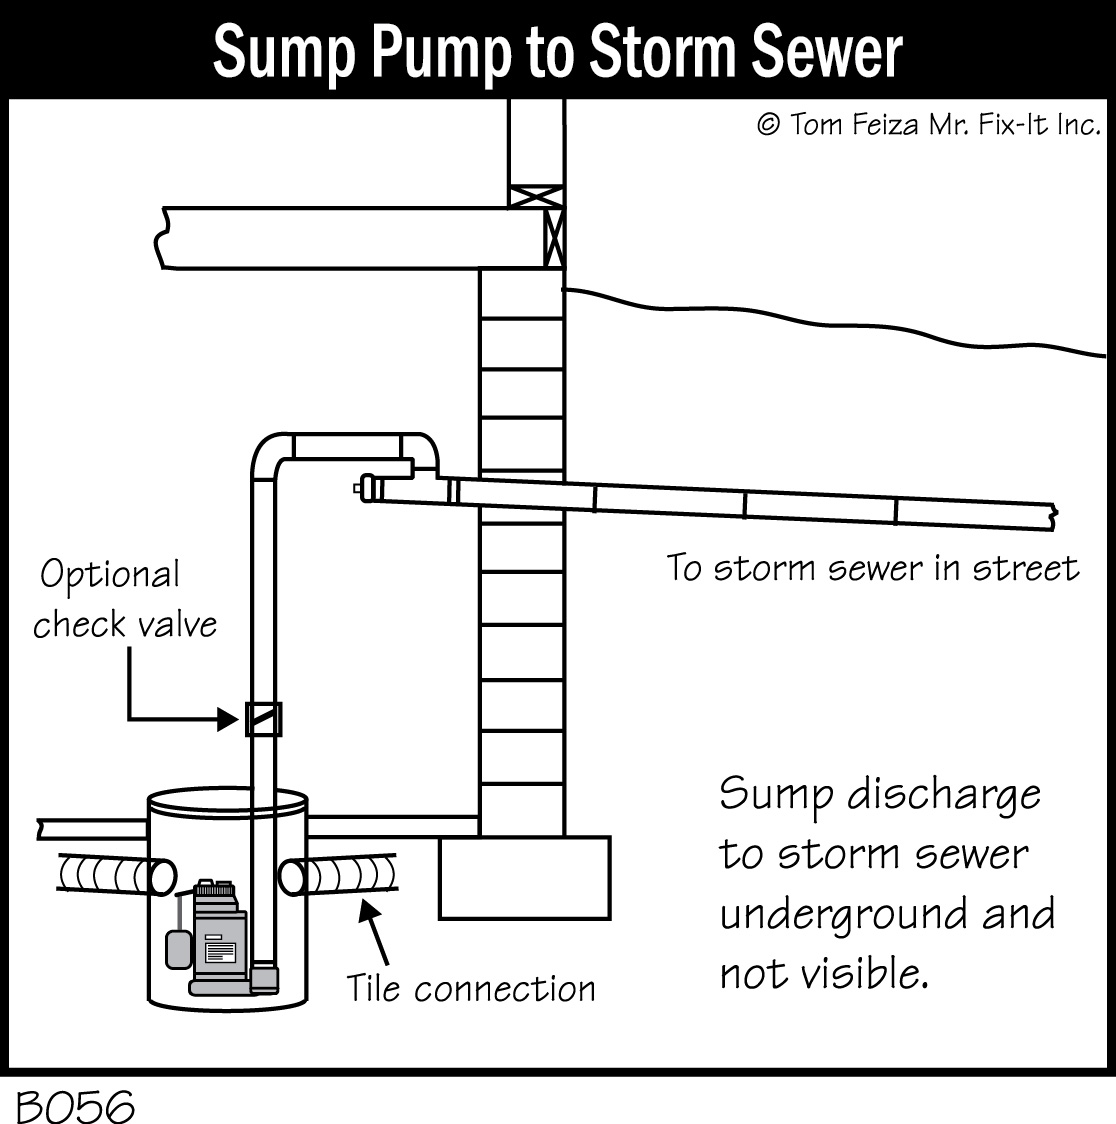 hight resolution of storm sewer sump pump